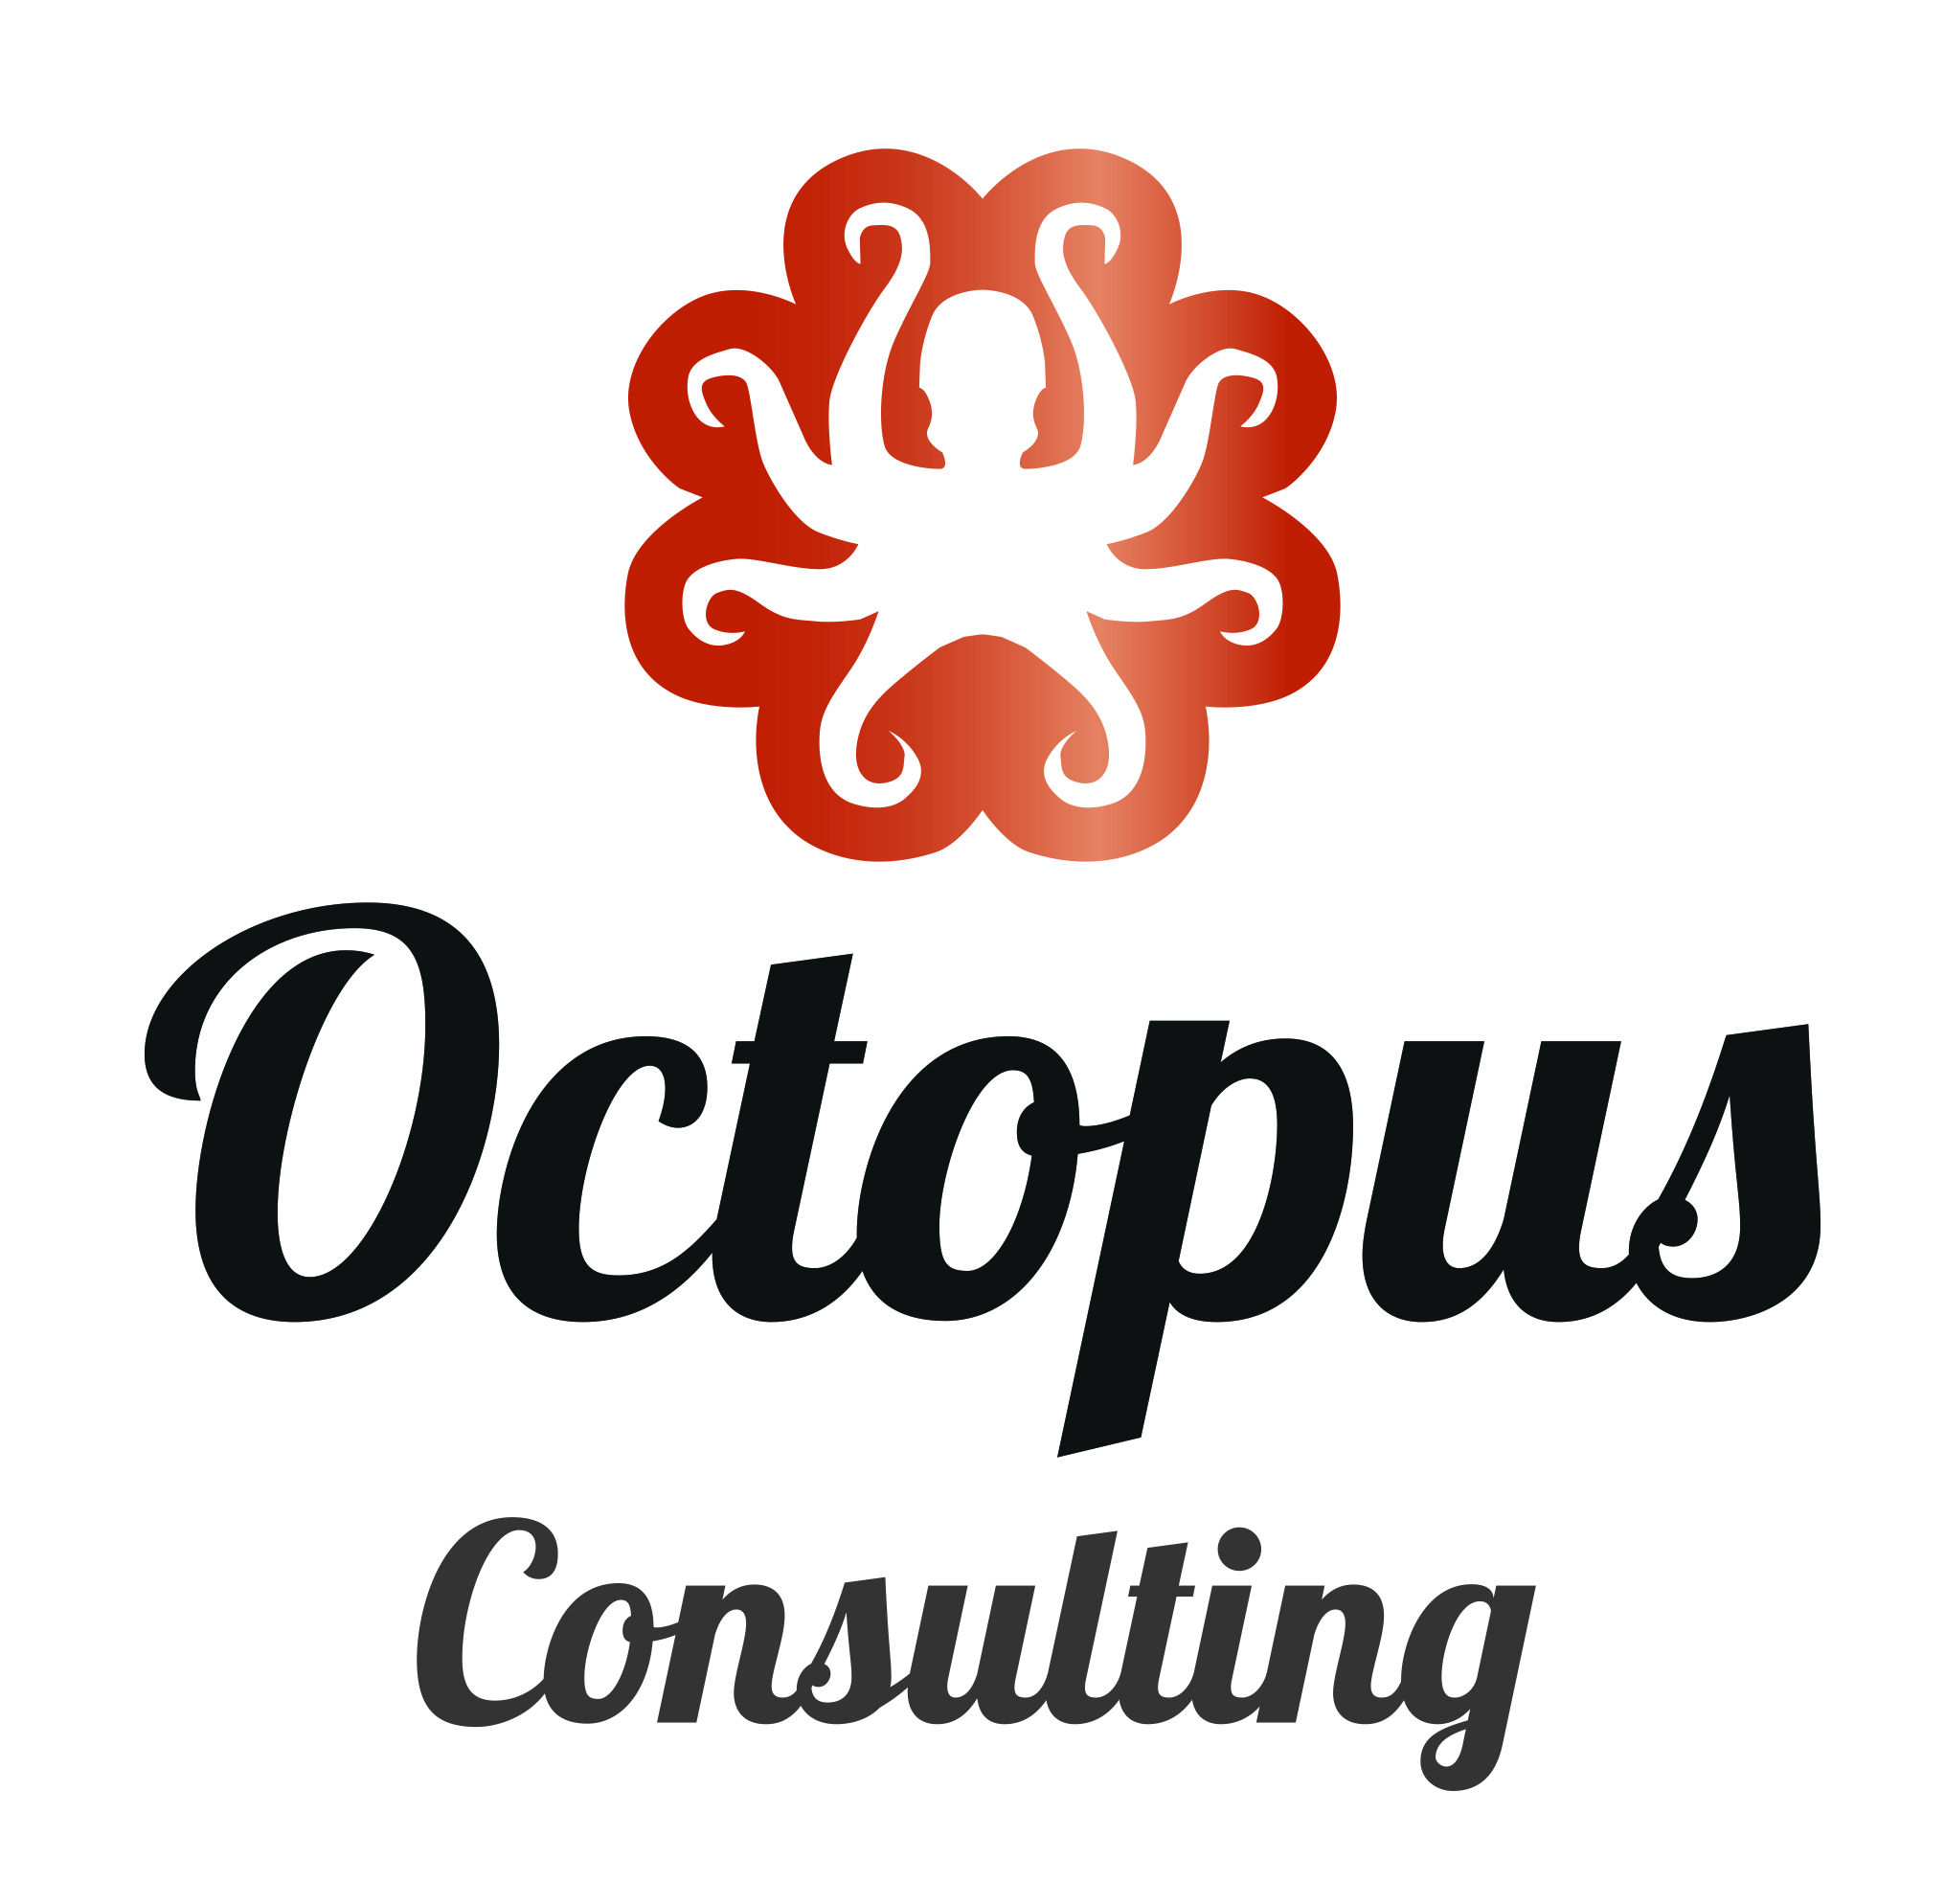 Octopus Consulting